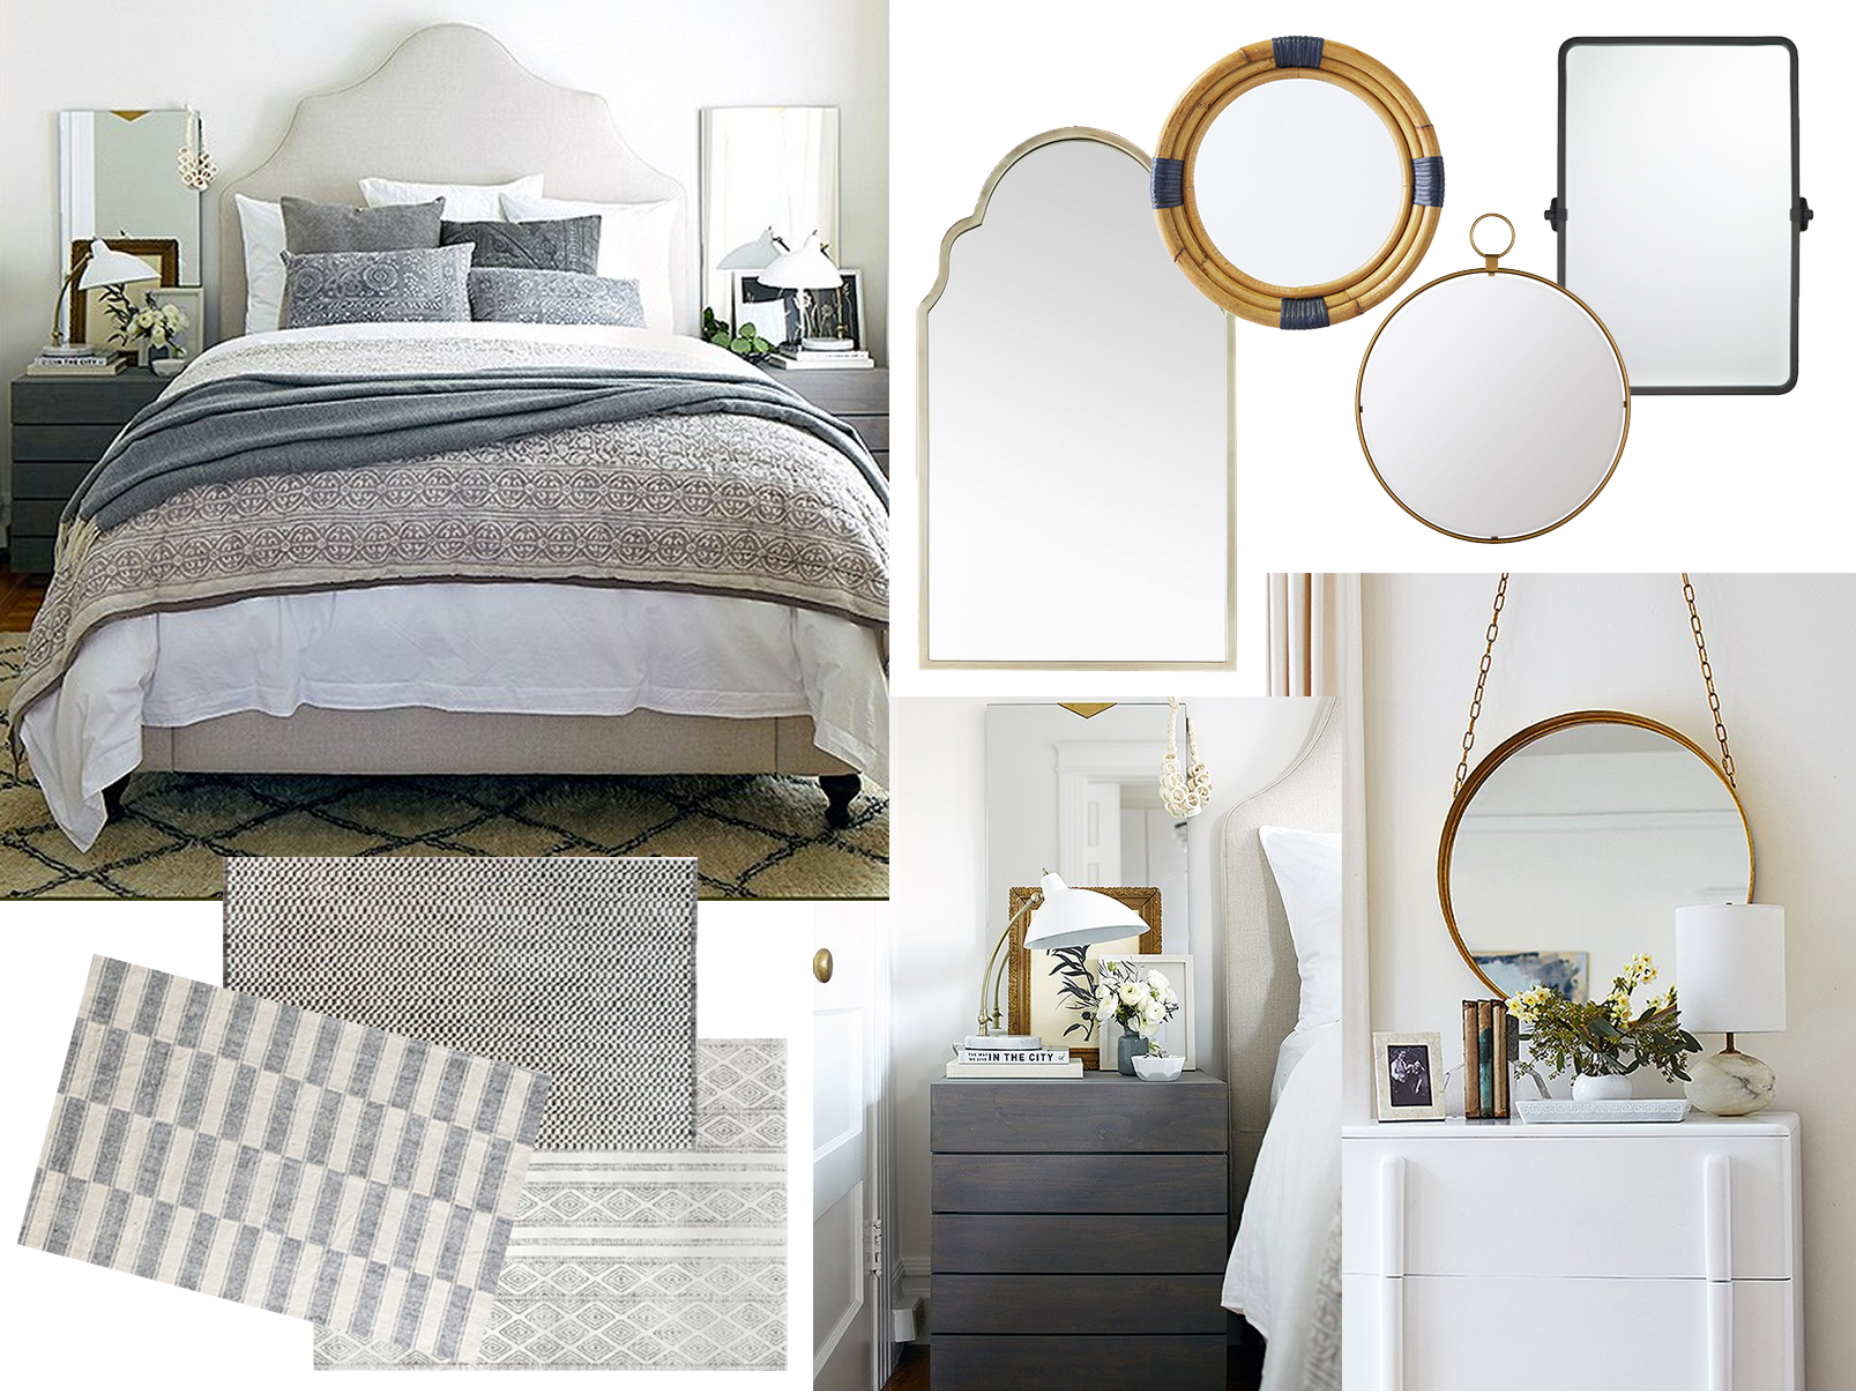 size mirrors for above my nightstands